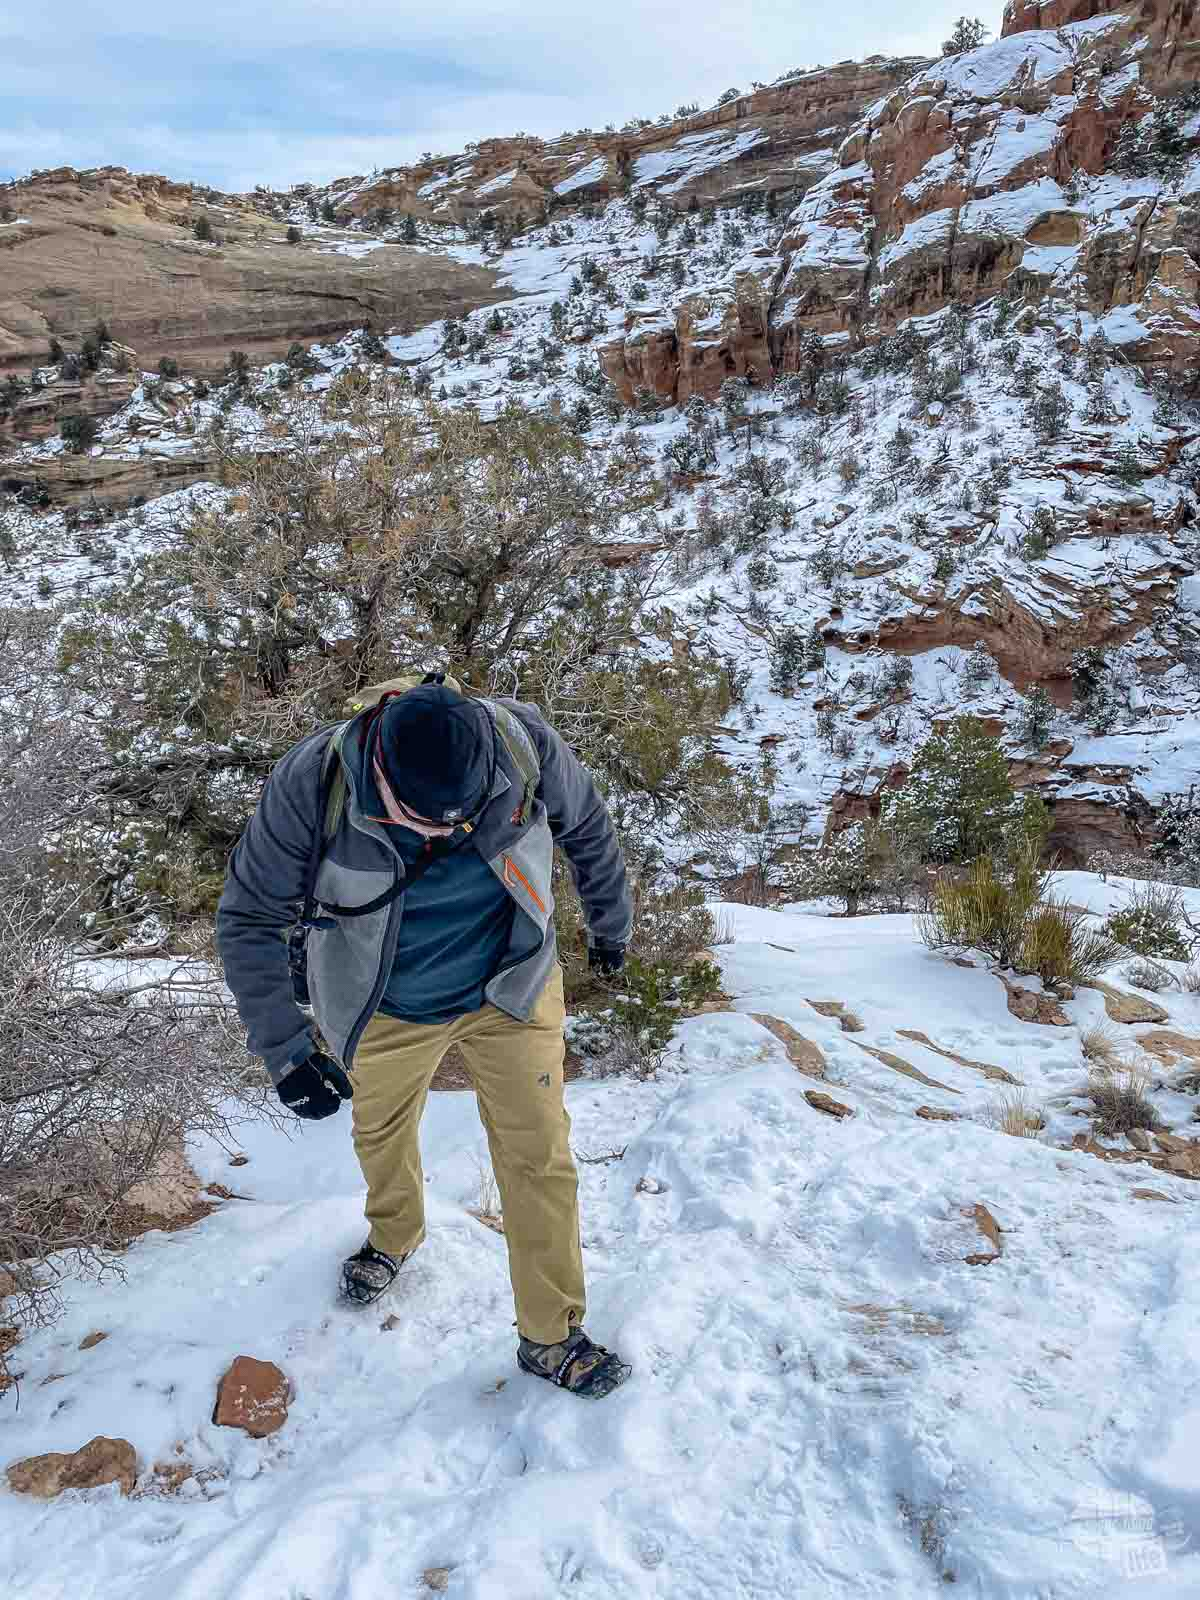 Grant hiking in the snow at Colorado National Monument